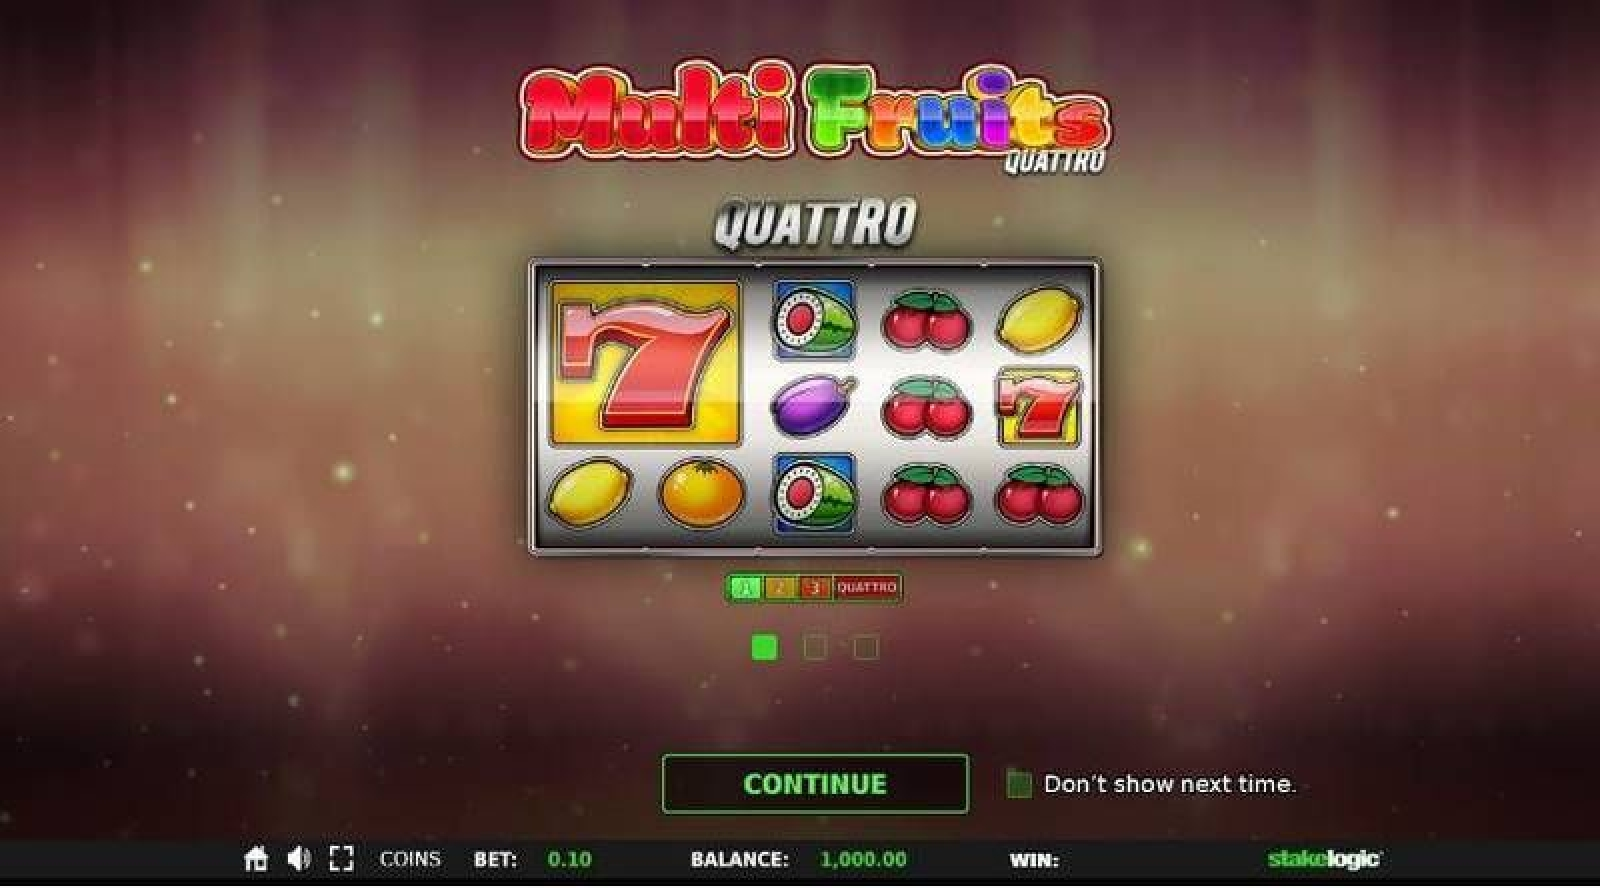 Multi Fruits Quattro Online Slot Demo Game by Stakelogic